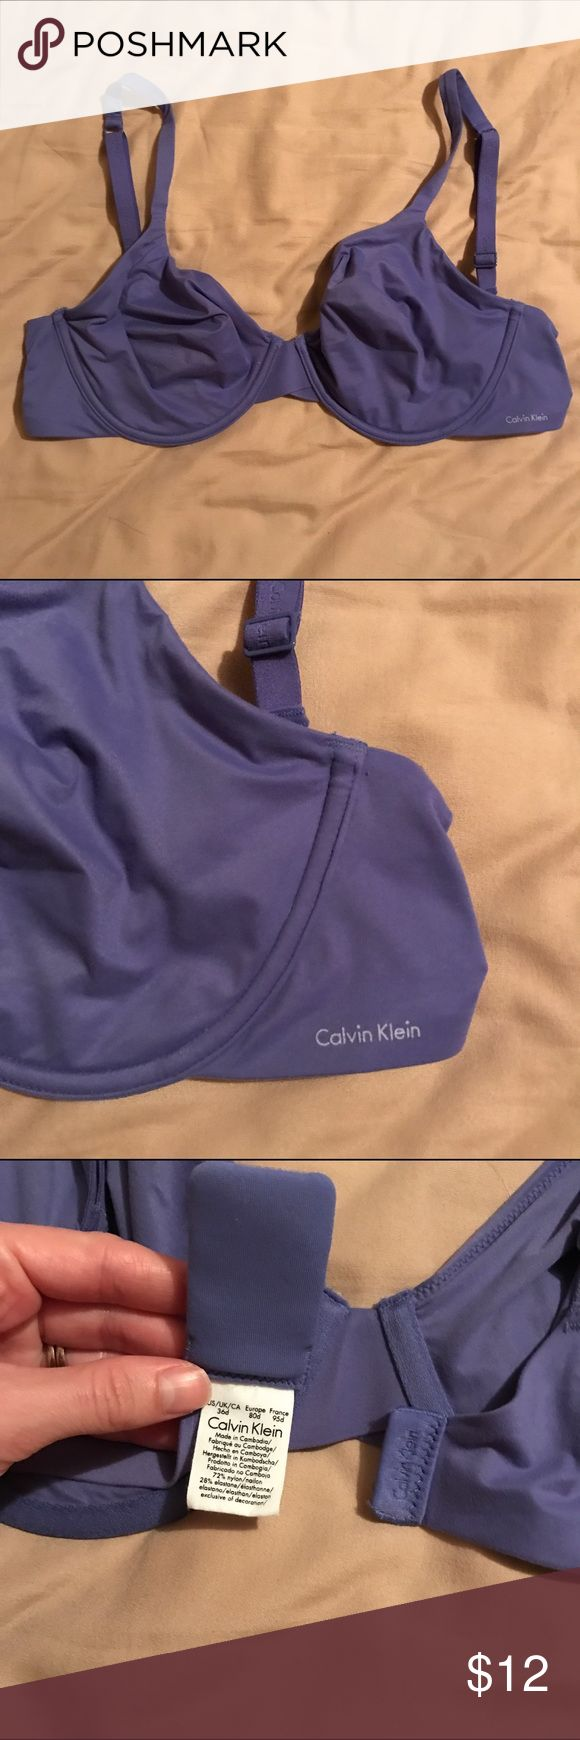 No padding bra Underwire but no padding. Softest material ever! Wide band for comfort. Used for maternity sports bra while my bust was bigger and now it no longer fits. Basically brand new condition. Calvin Klein Intimates & Sleepwear Bras